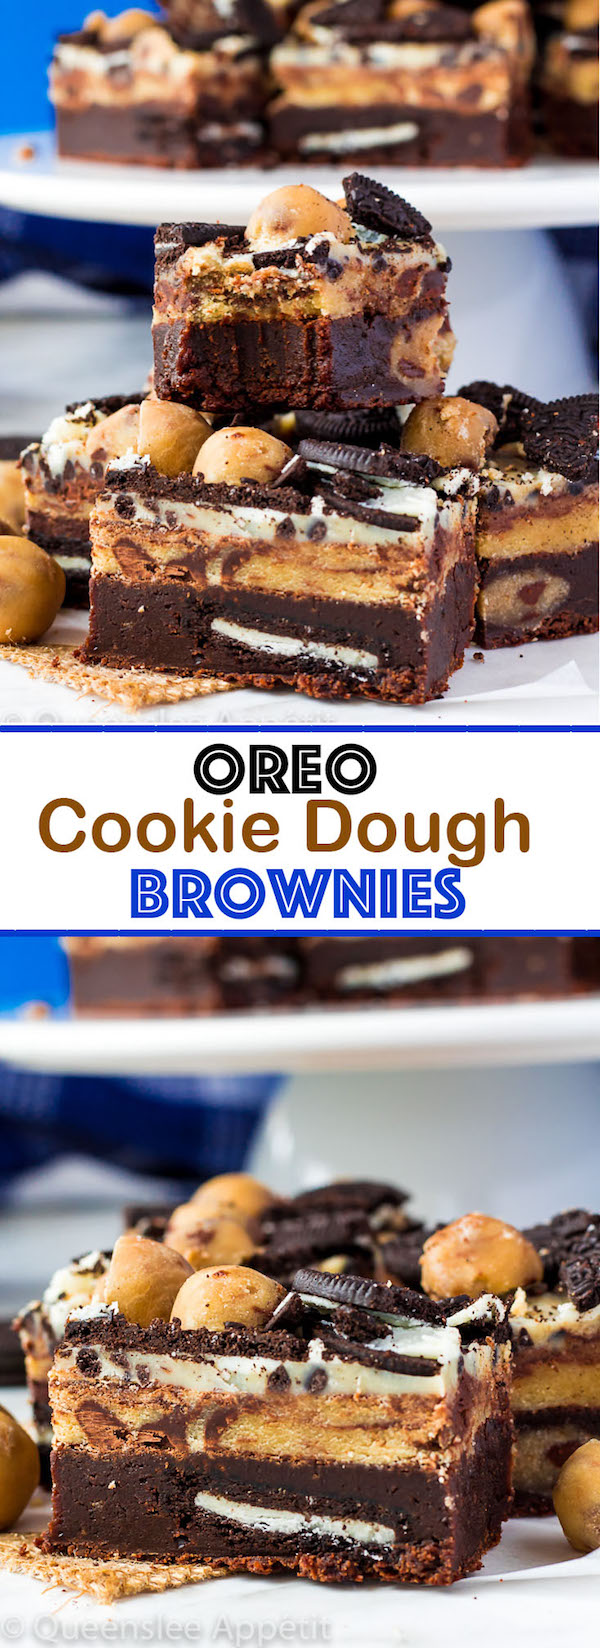 These Oreo Cookie Dough Brownies are the most deliciously decadent and rich little bars!